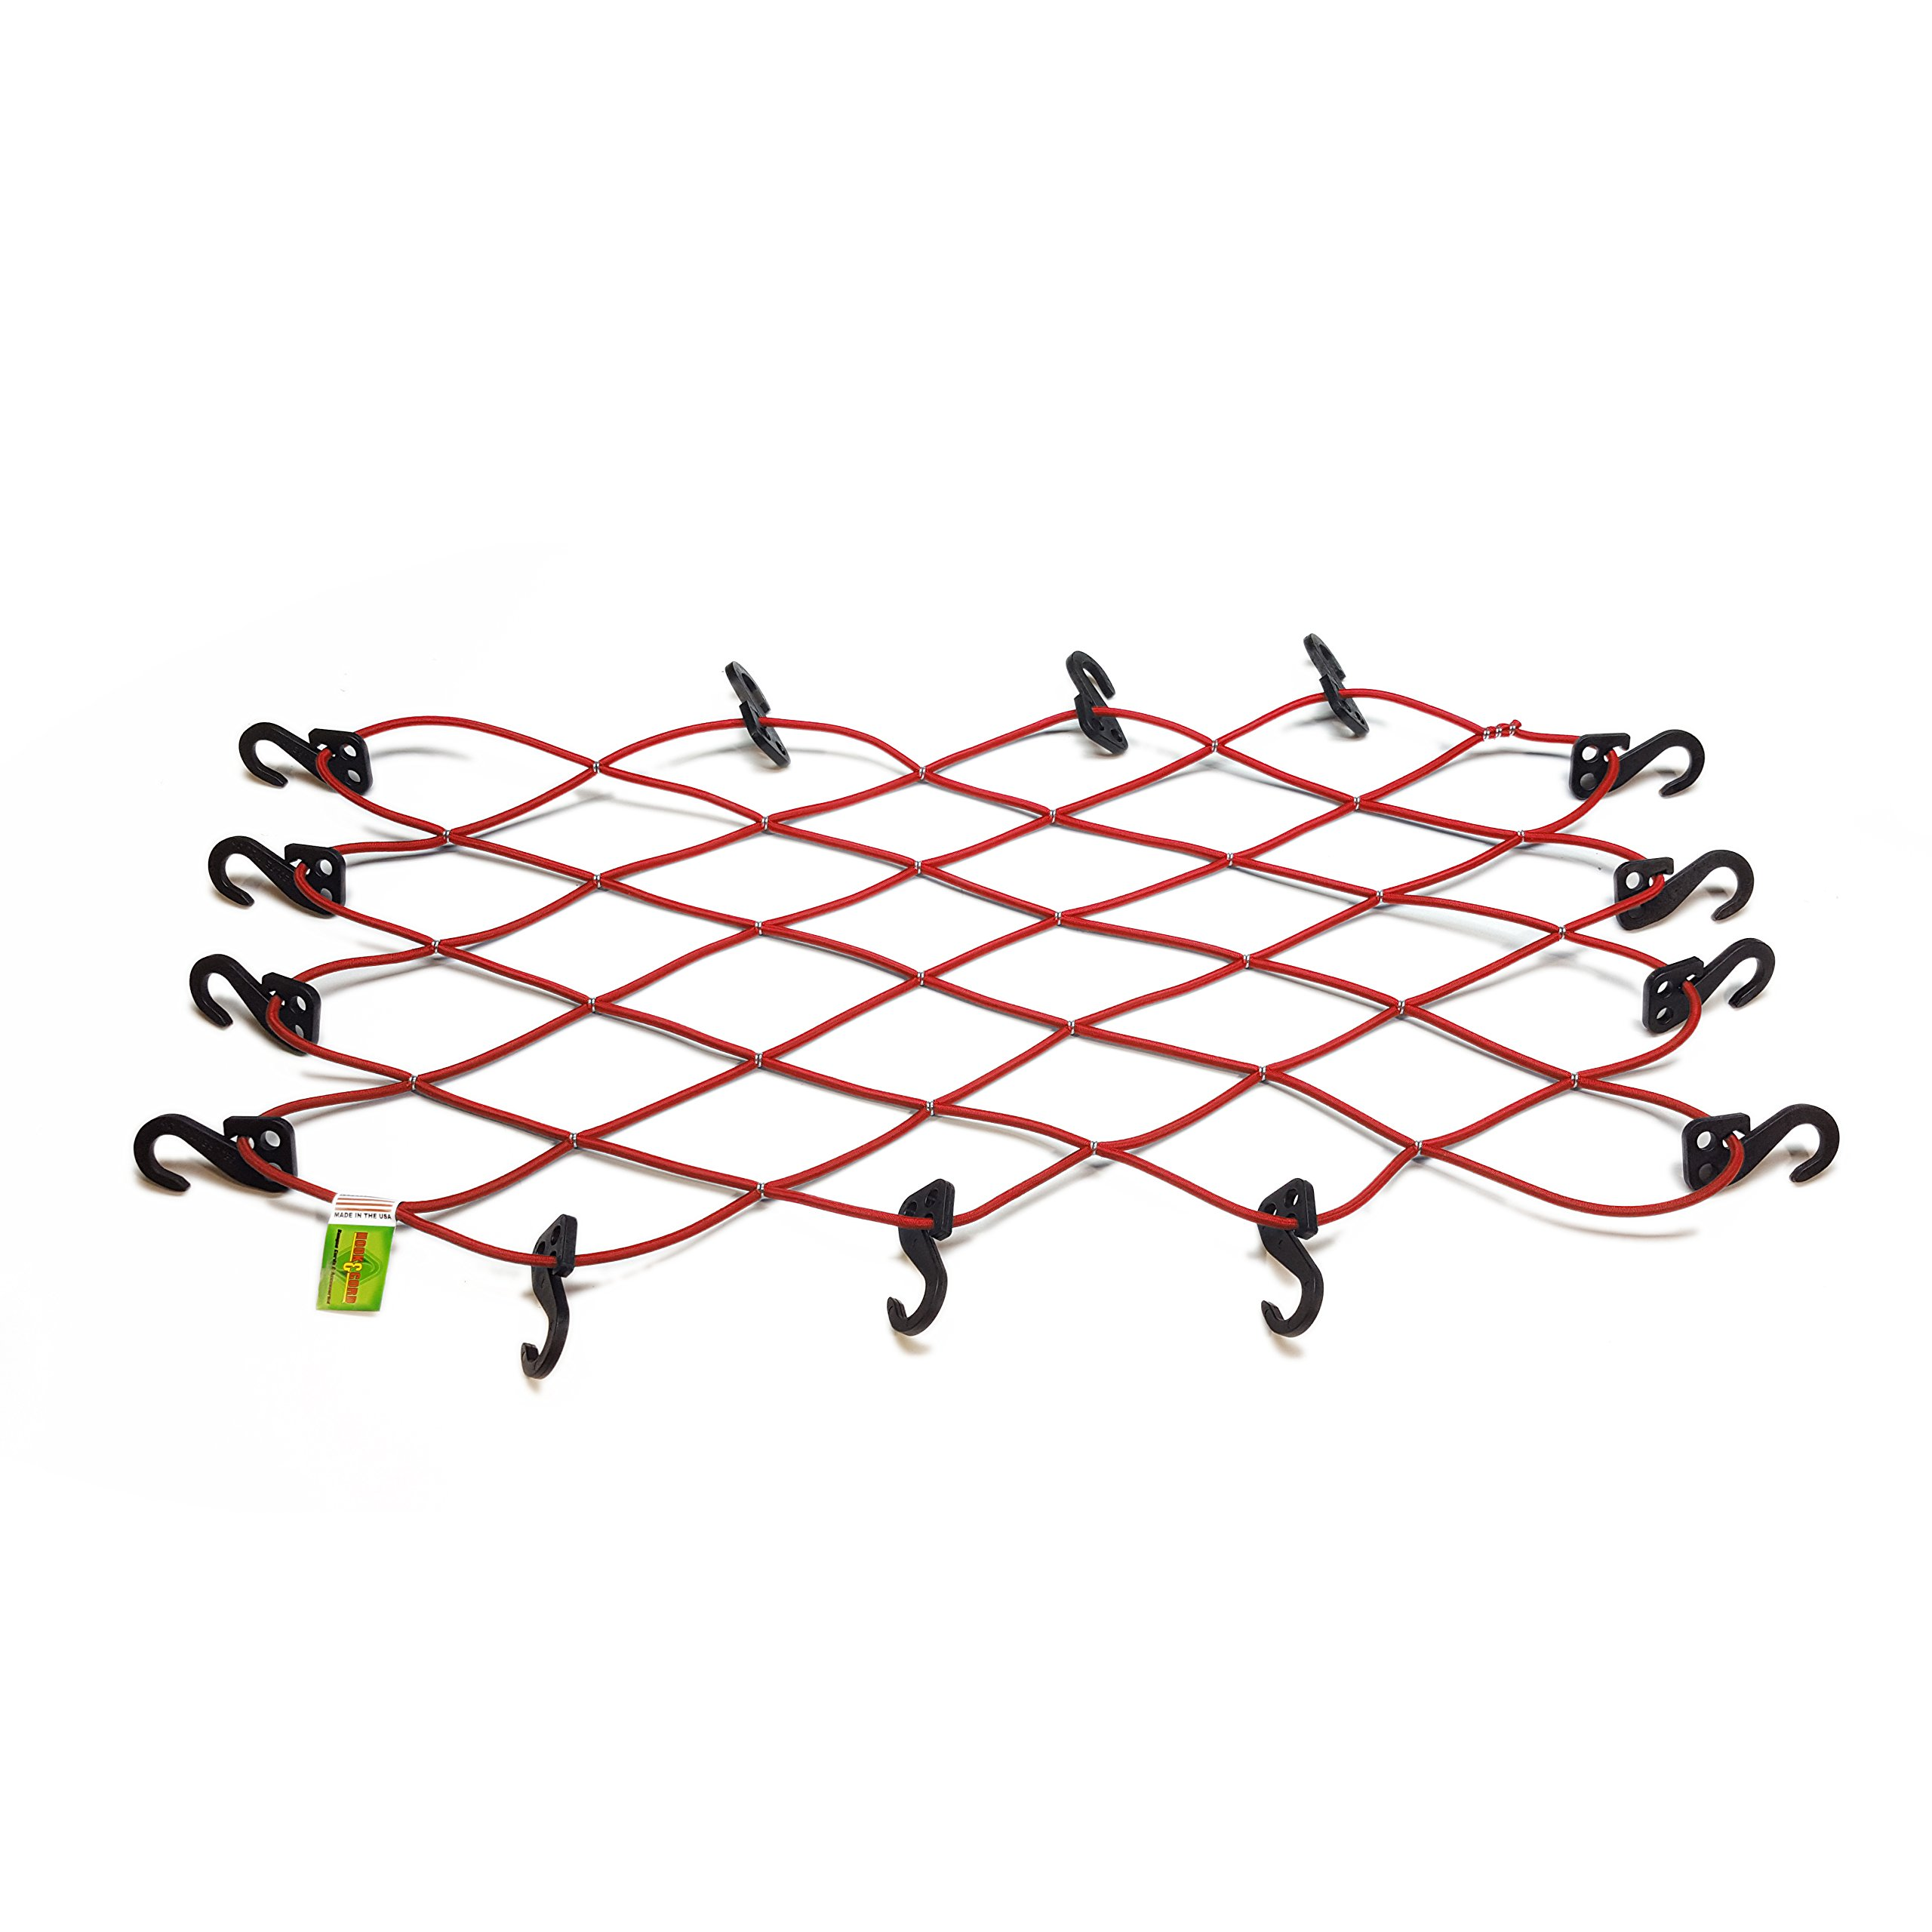 1/4'' Standard Duty Bungee Cord Cargo Net 28 Inches X 36 Inches with 14 SIQCN''Secure It Quick Cargo Net'' Hooks USA Made HC 5416 (Red)